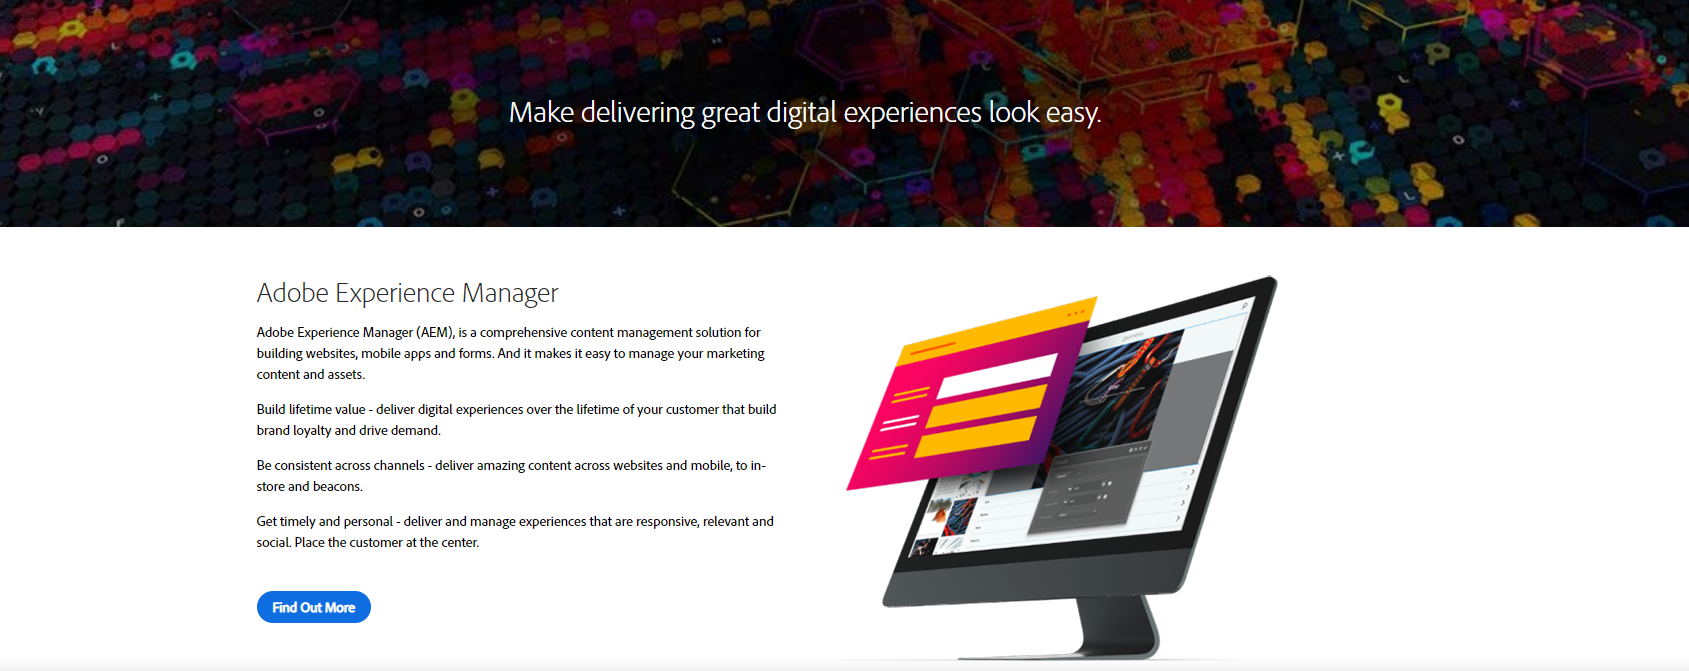 Adobe experience manager website